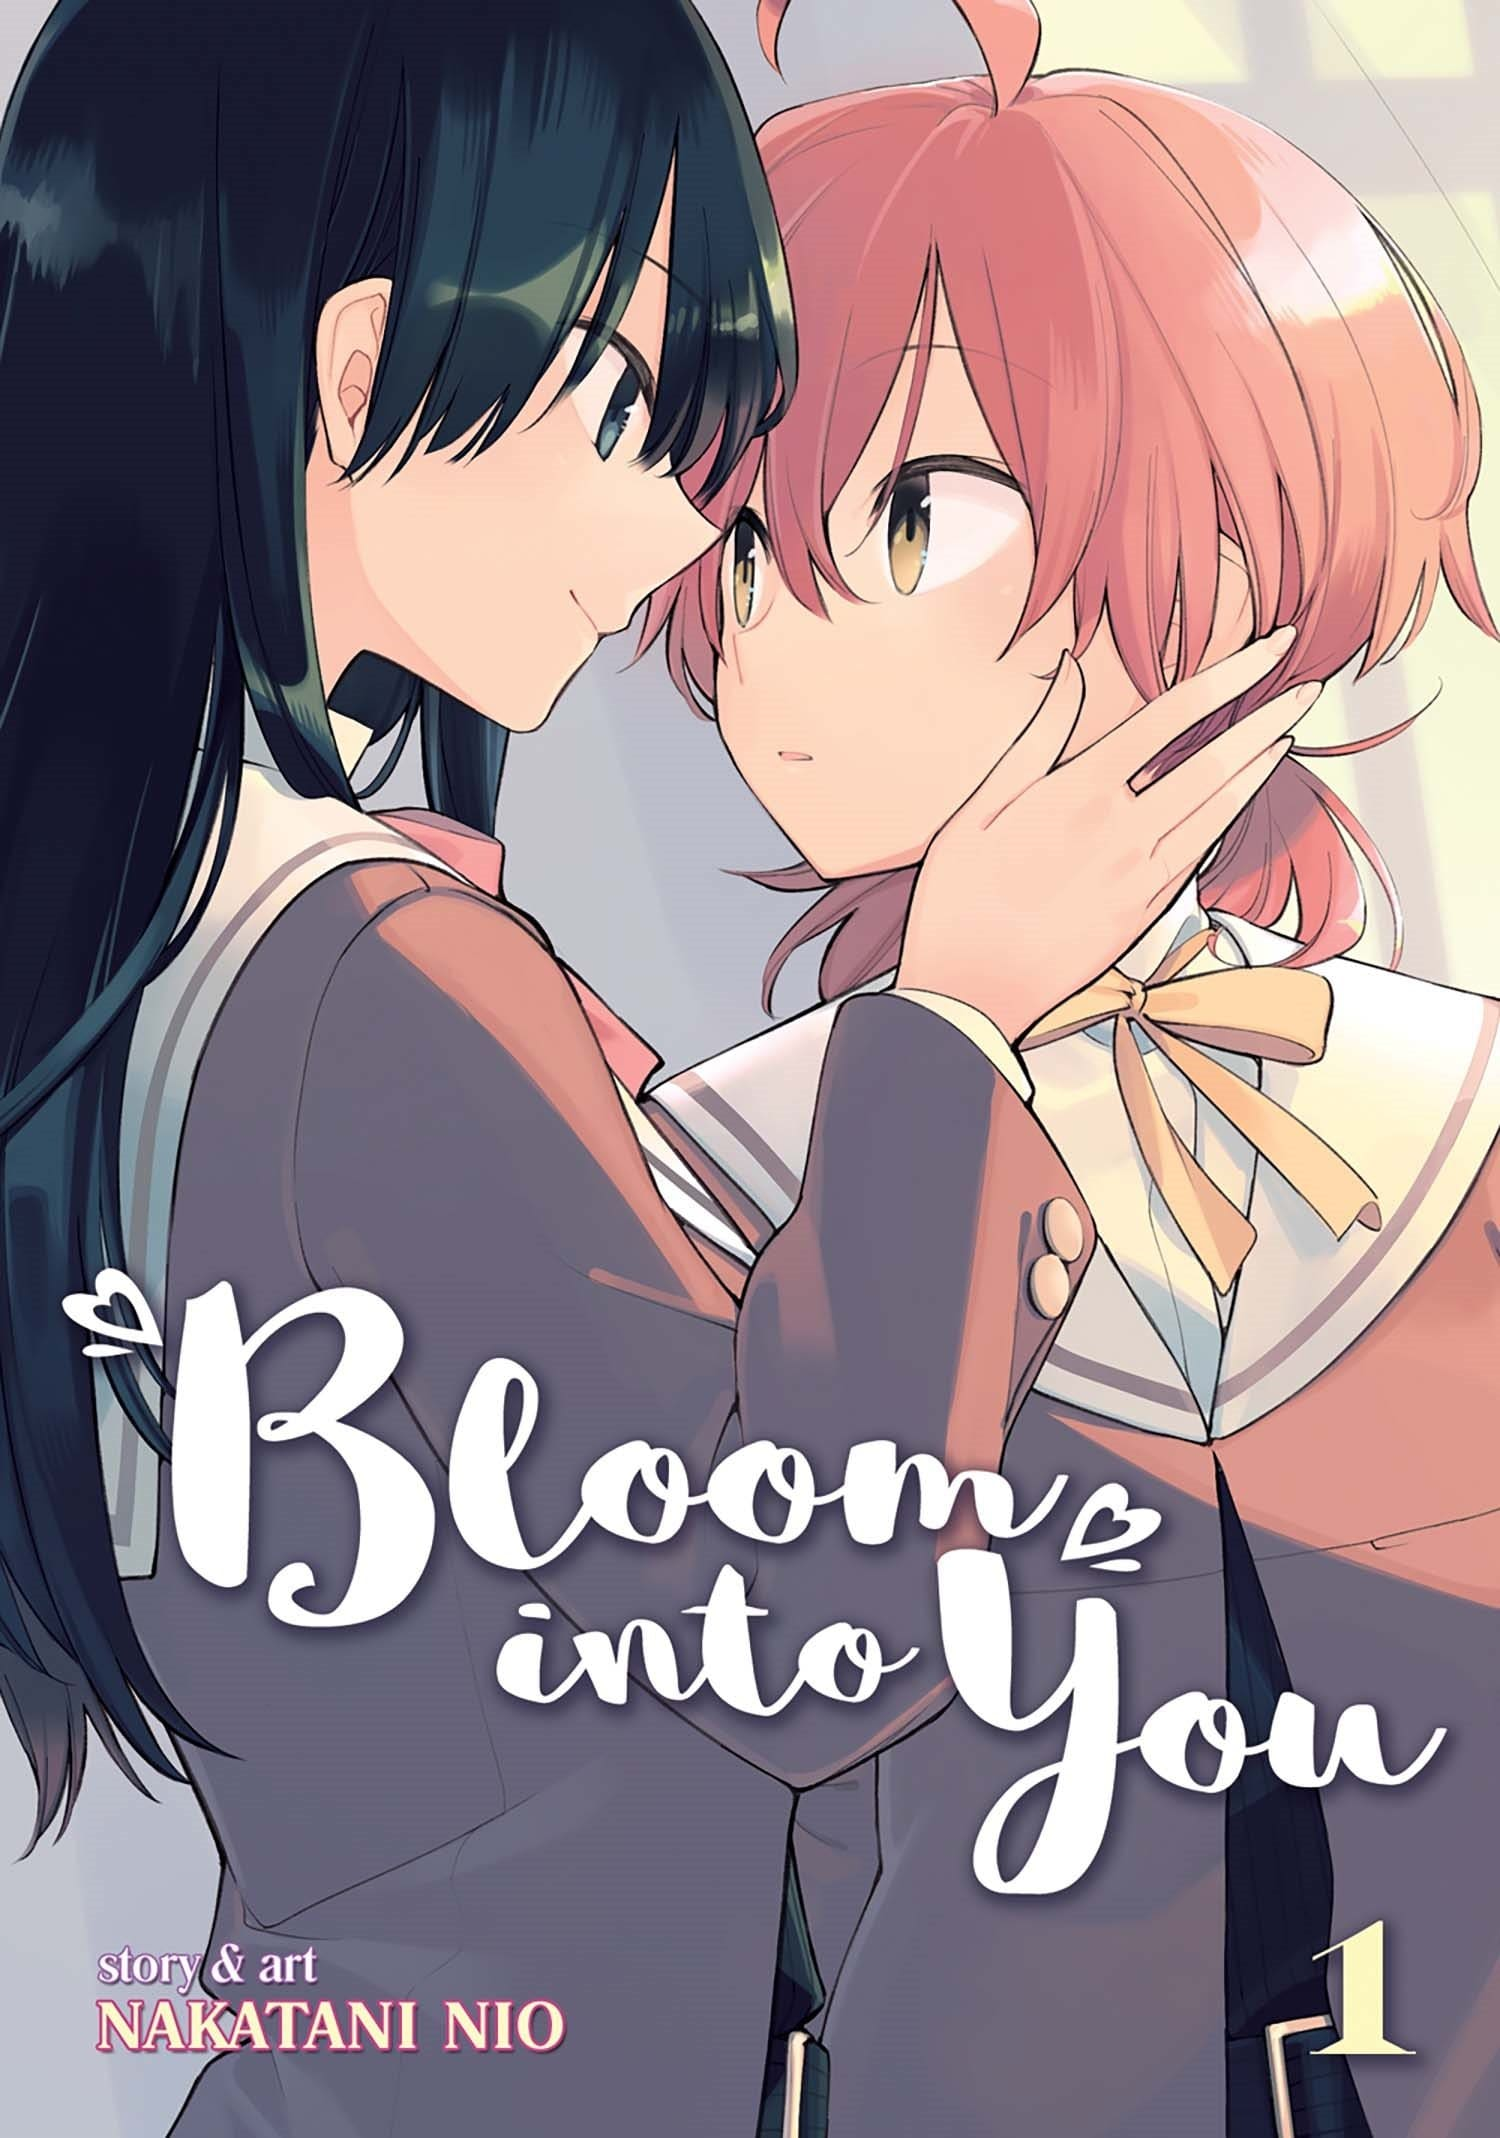 A sweet manga about discovering what love is.